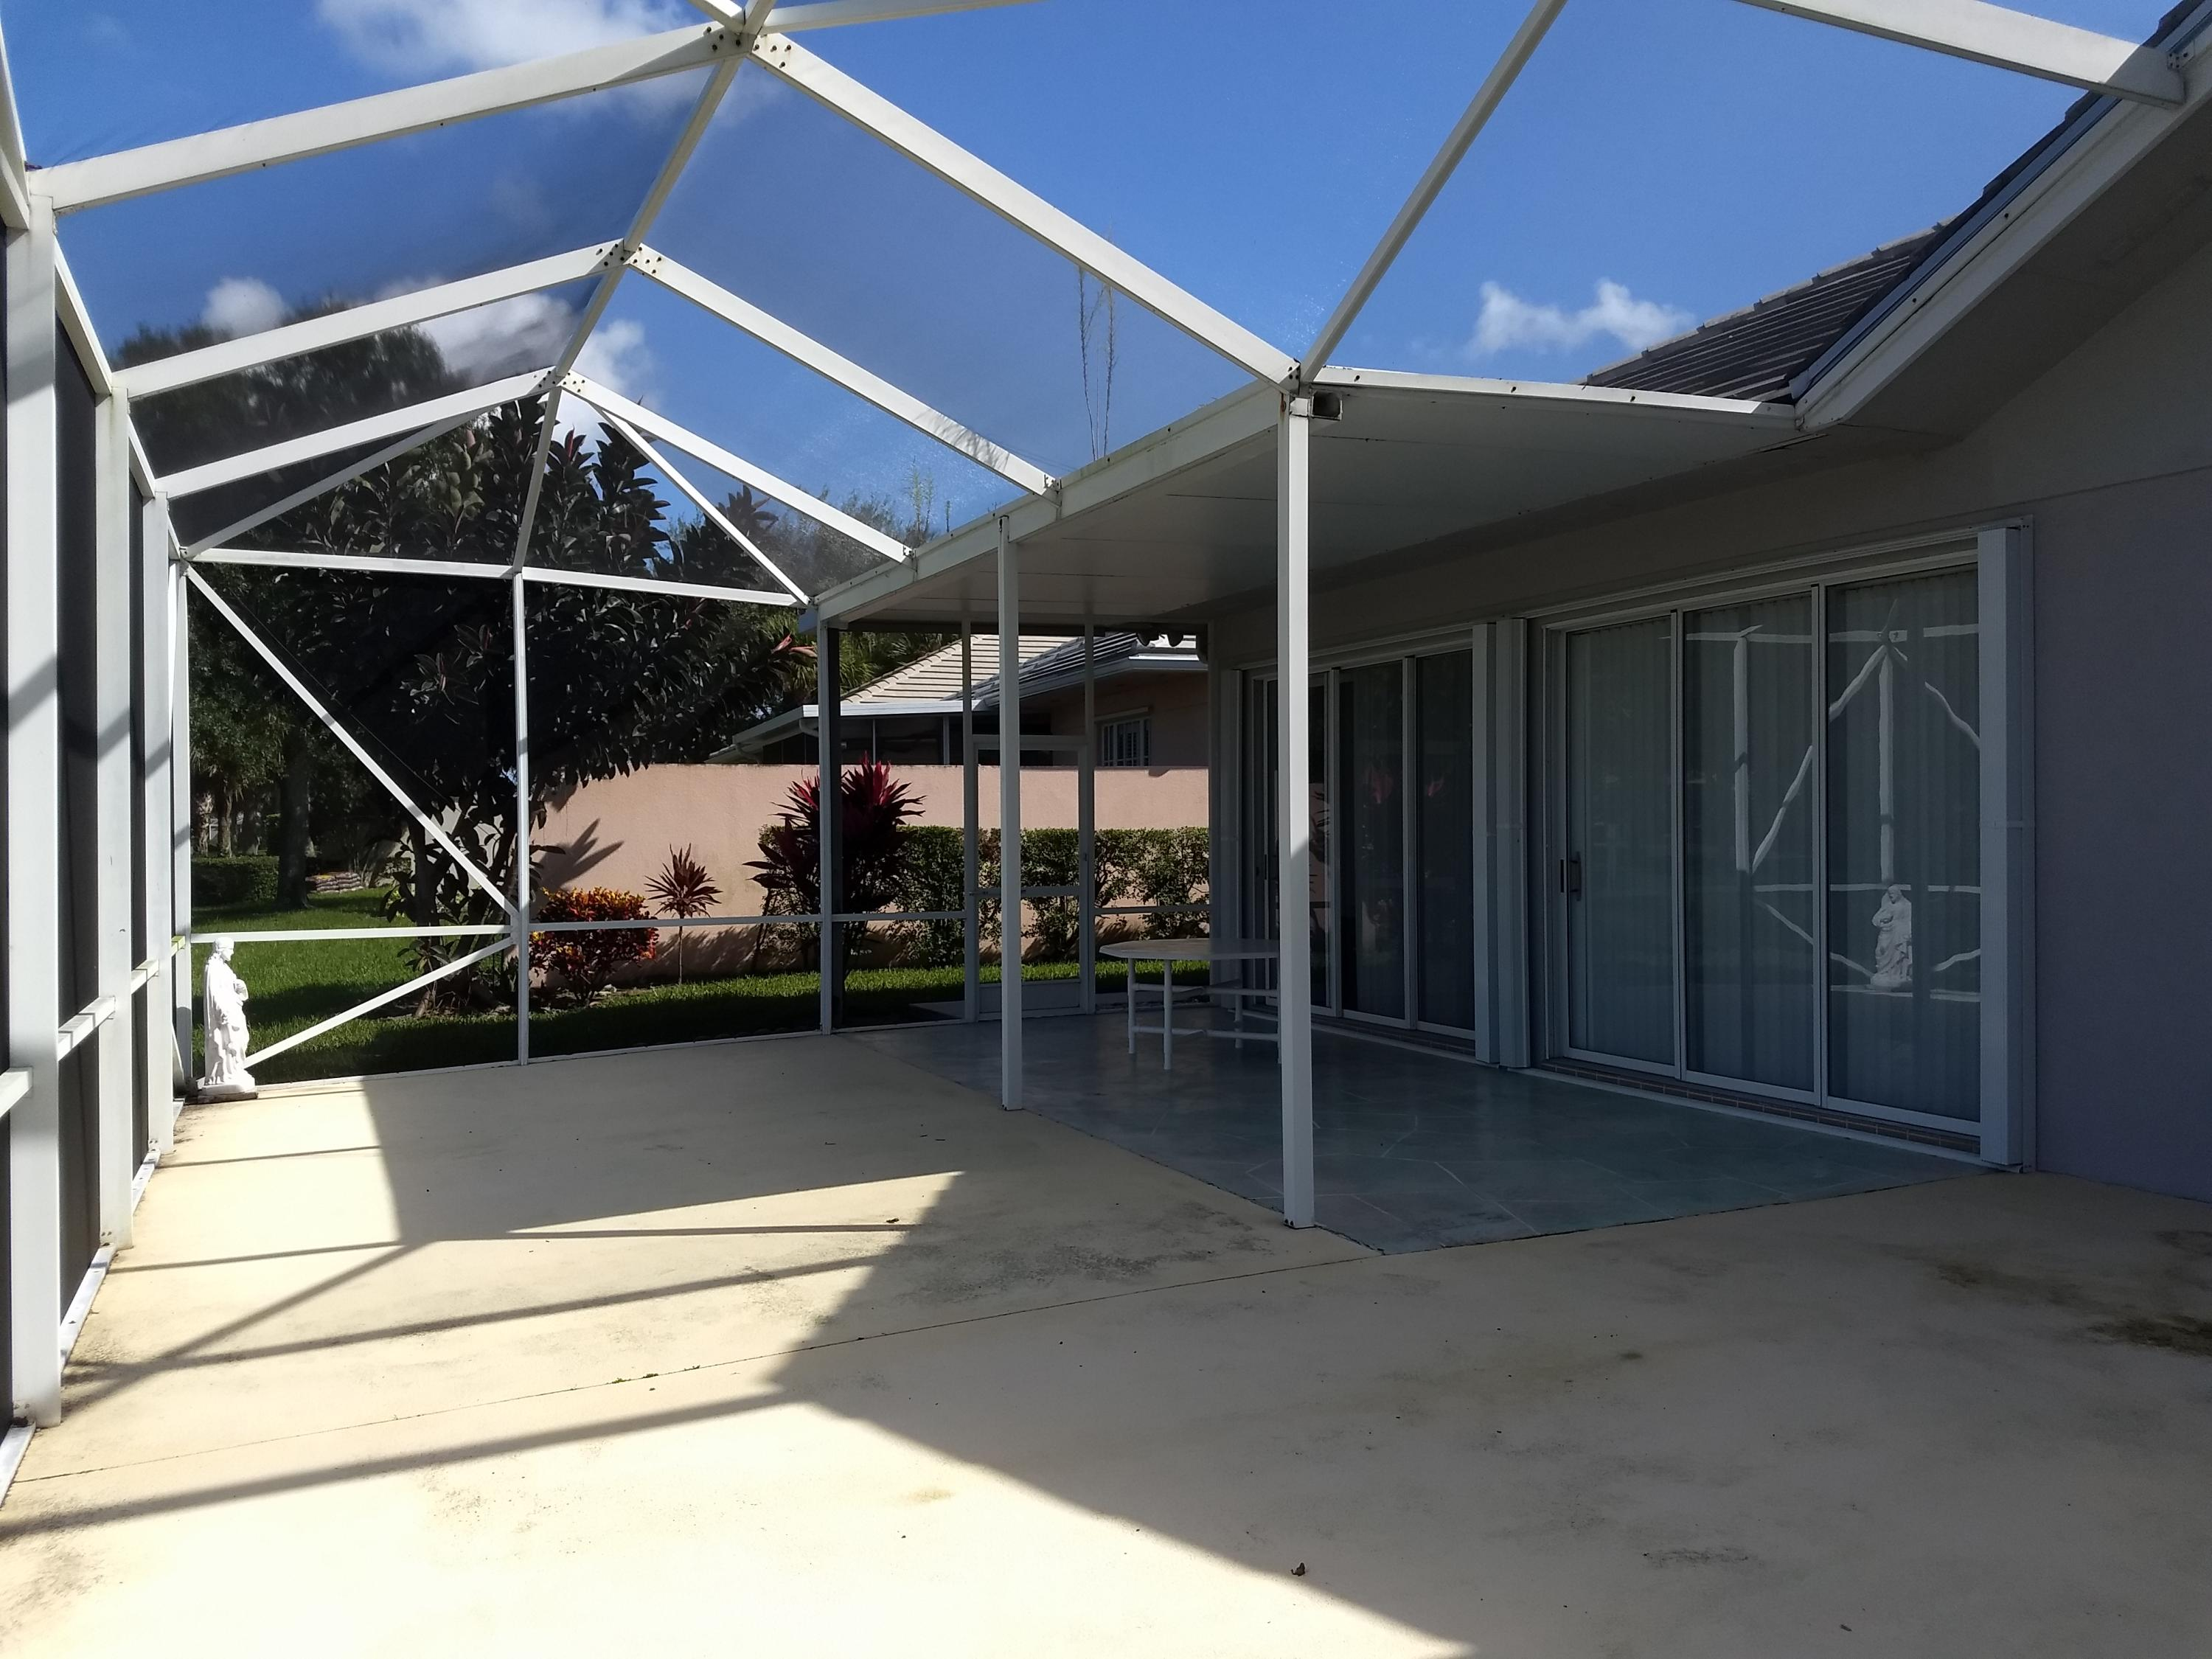 LAKES AT ST LUCIE WEST REALTY